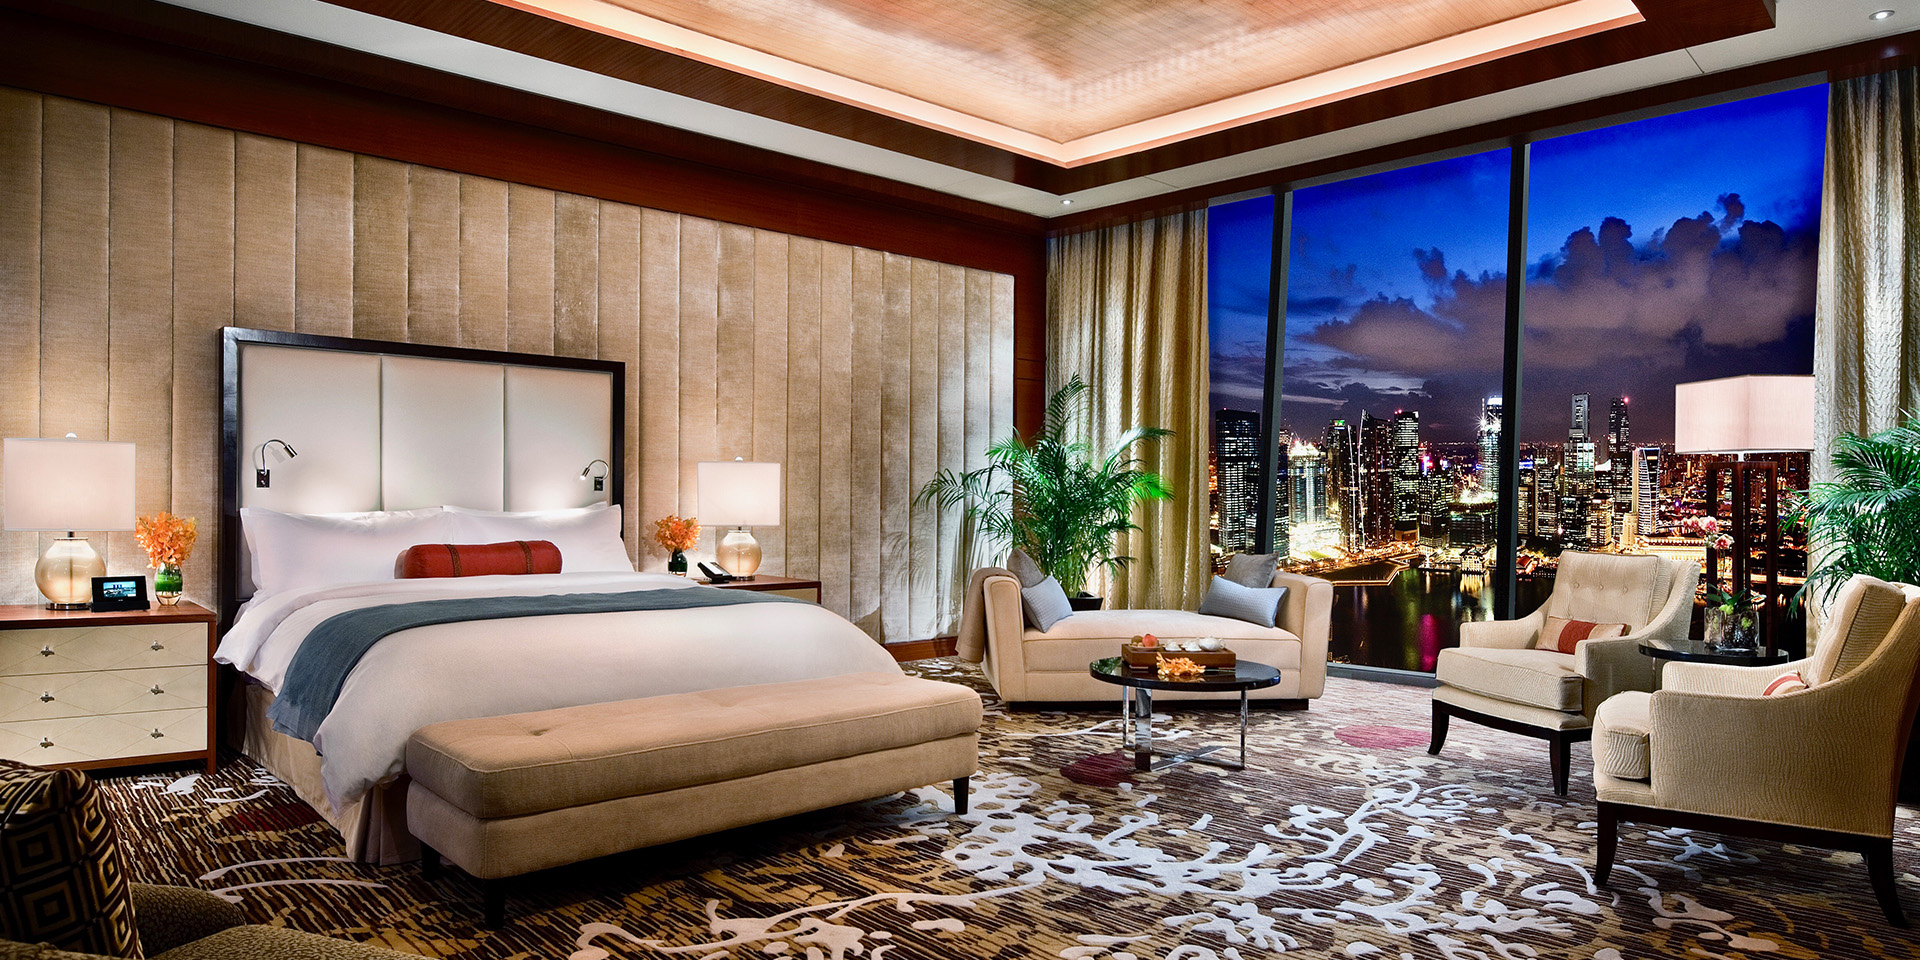 hotel room at the Marina Bay Sands Hotel in Singapore